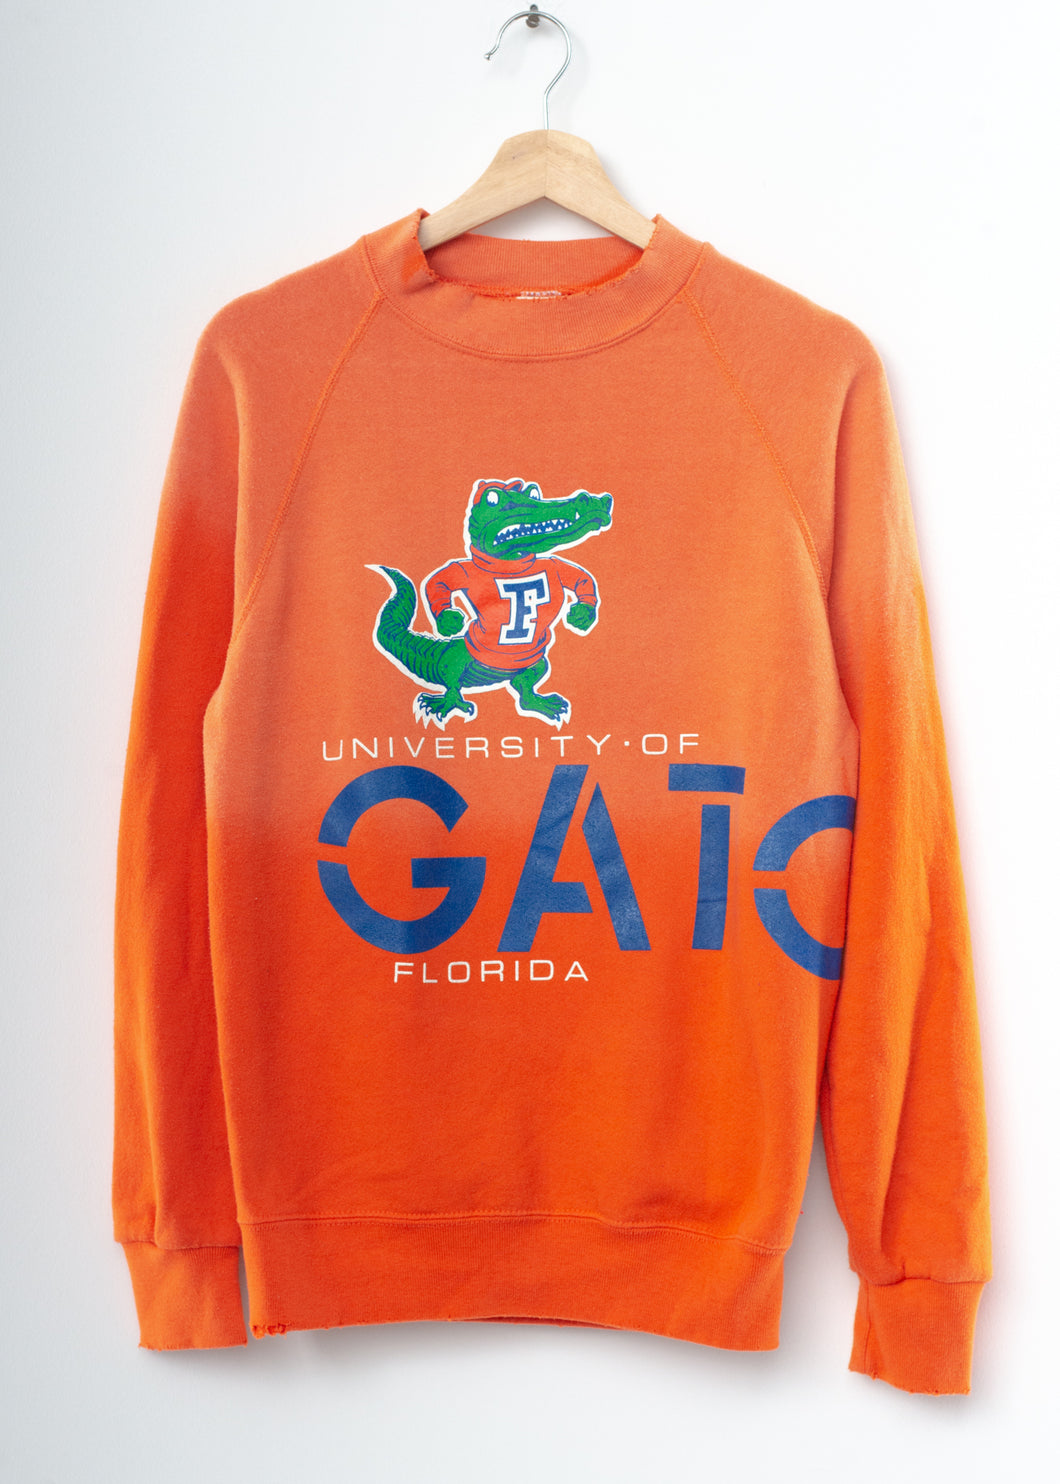 Florida Gators Sweatshirt